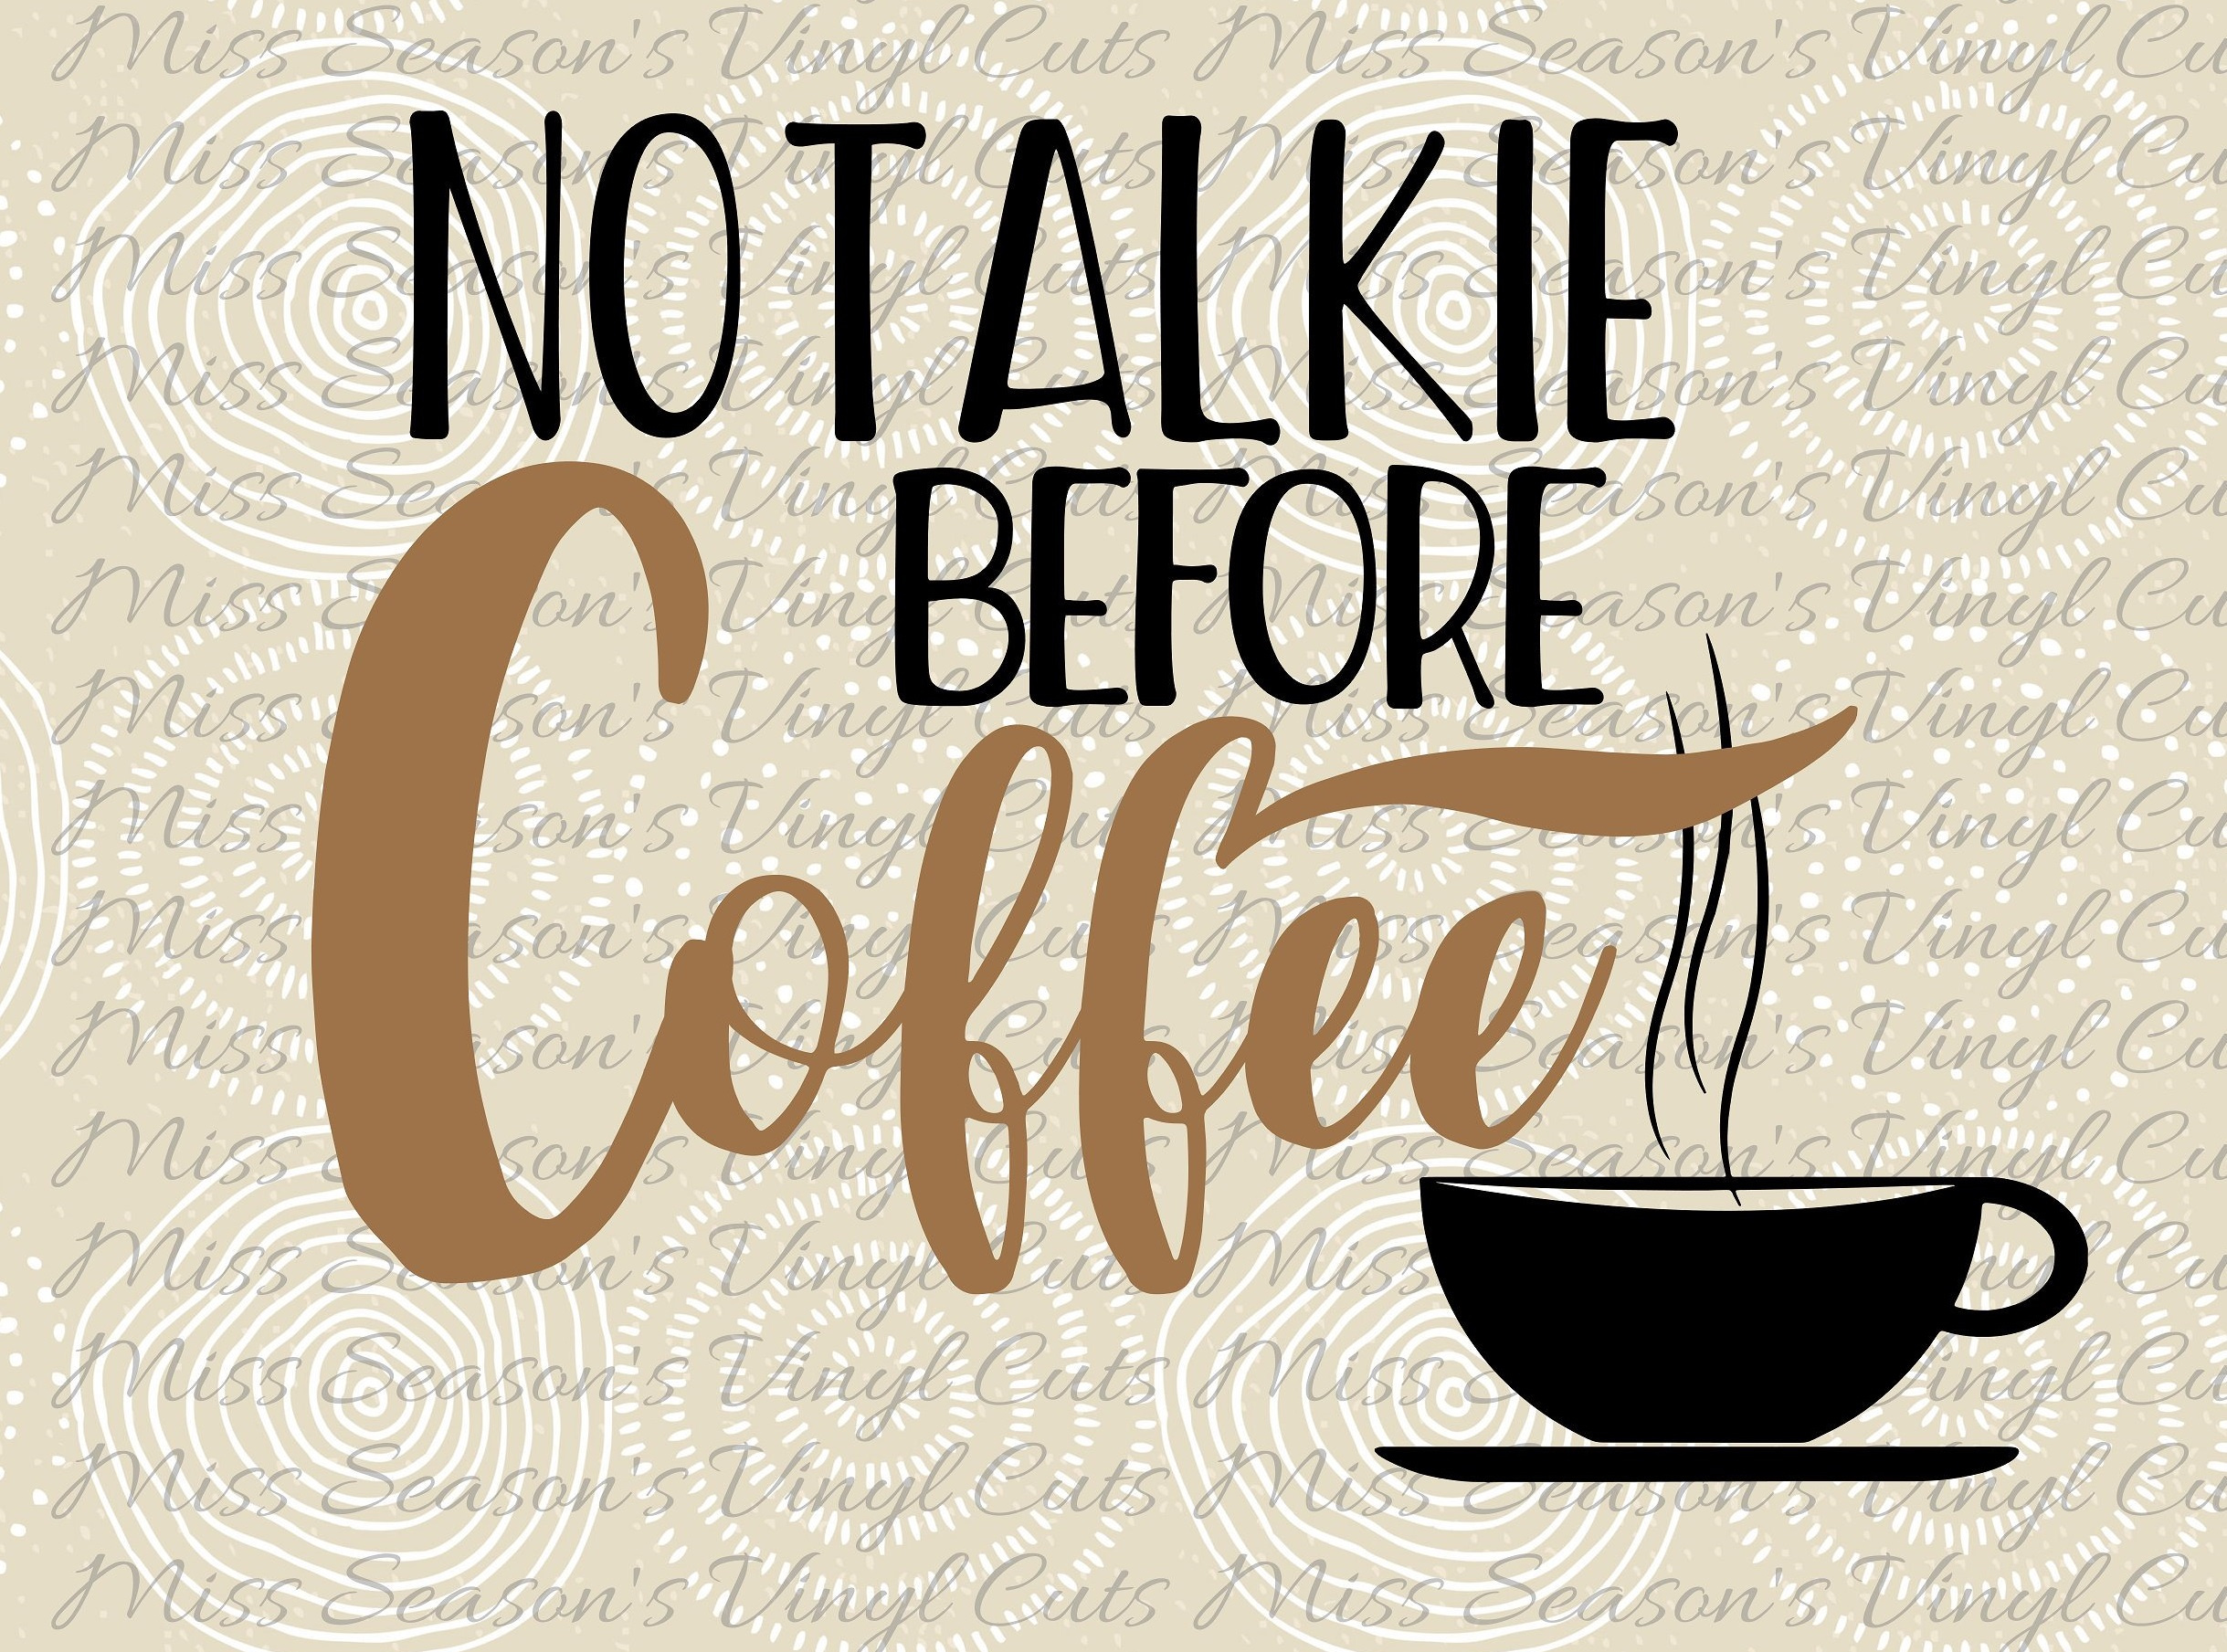 Download Free No Talkie Before Coffee Graphic By Missseasonsvinylcuts for Cricut Explore, Silhouette and other cutting machines.